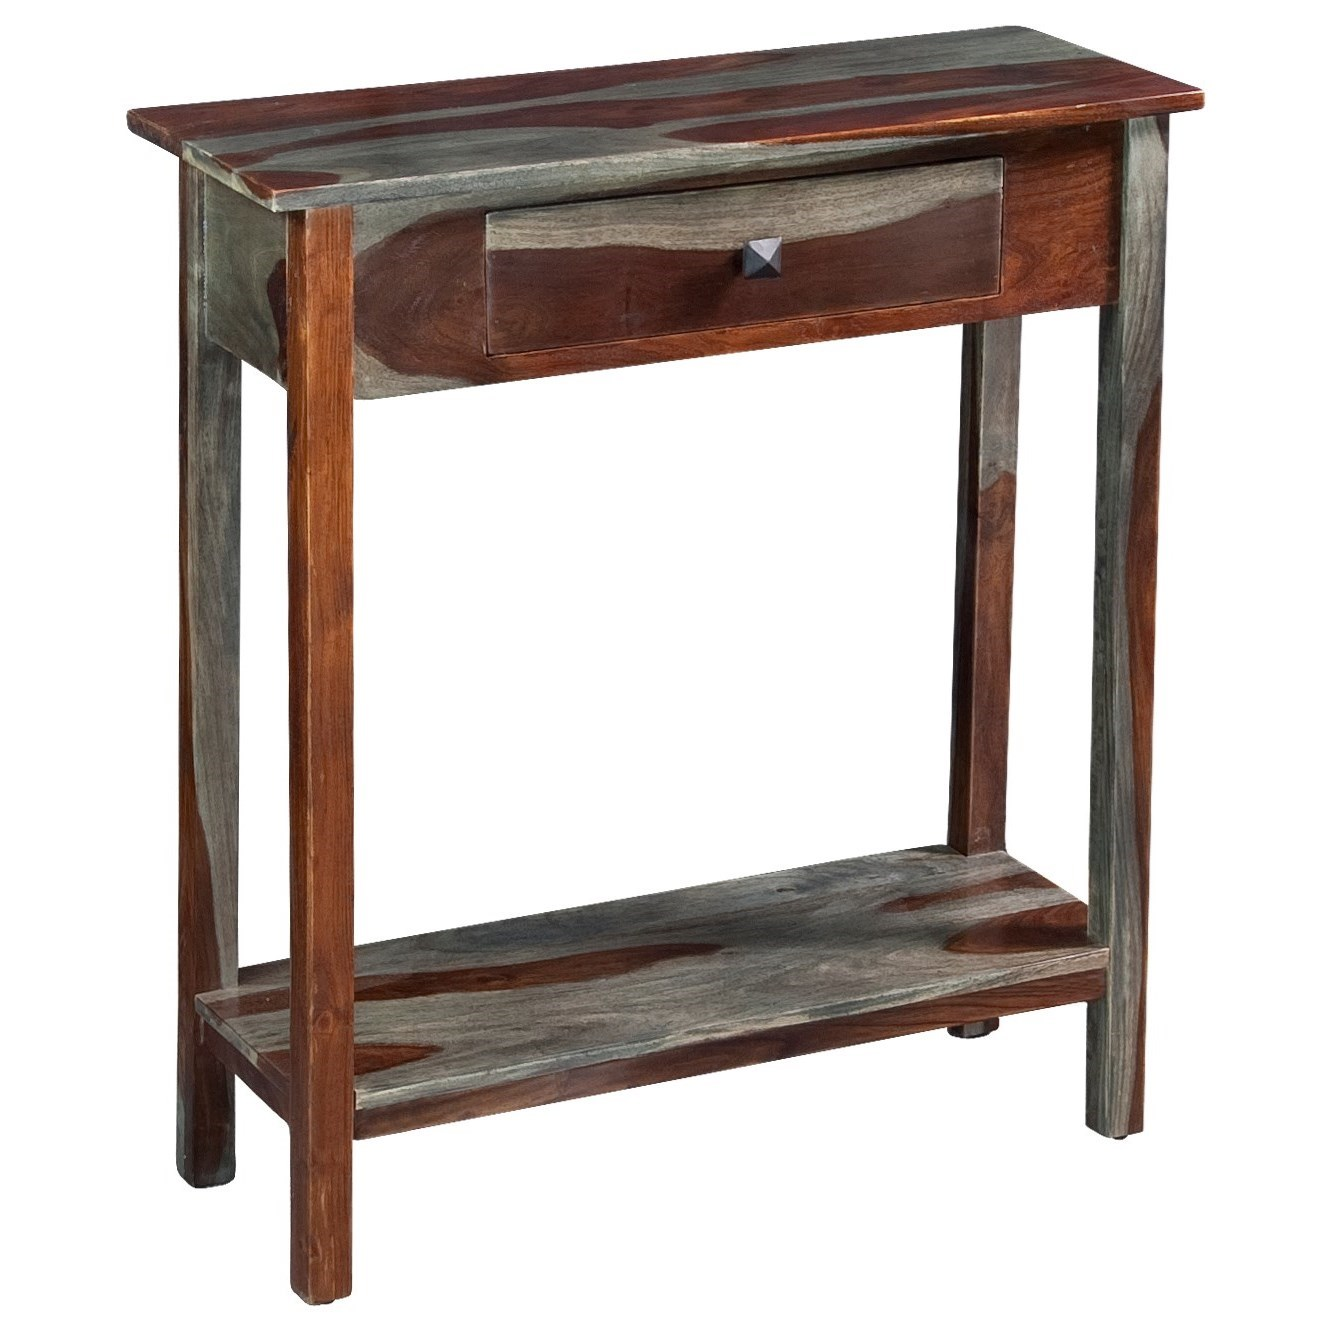 Coast to Coast Imports Grayson One Drawer Console Table - Item Number: 75308